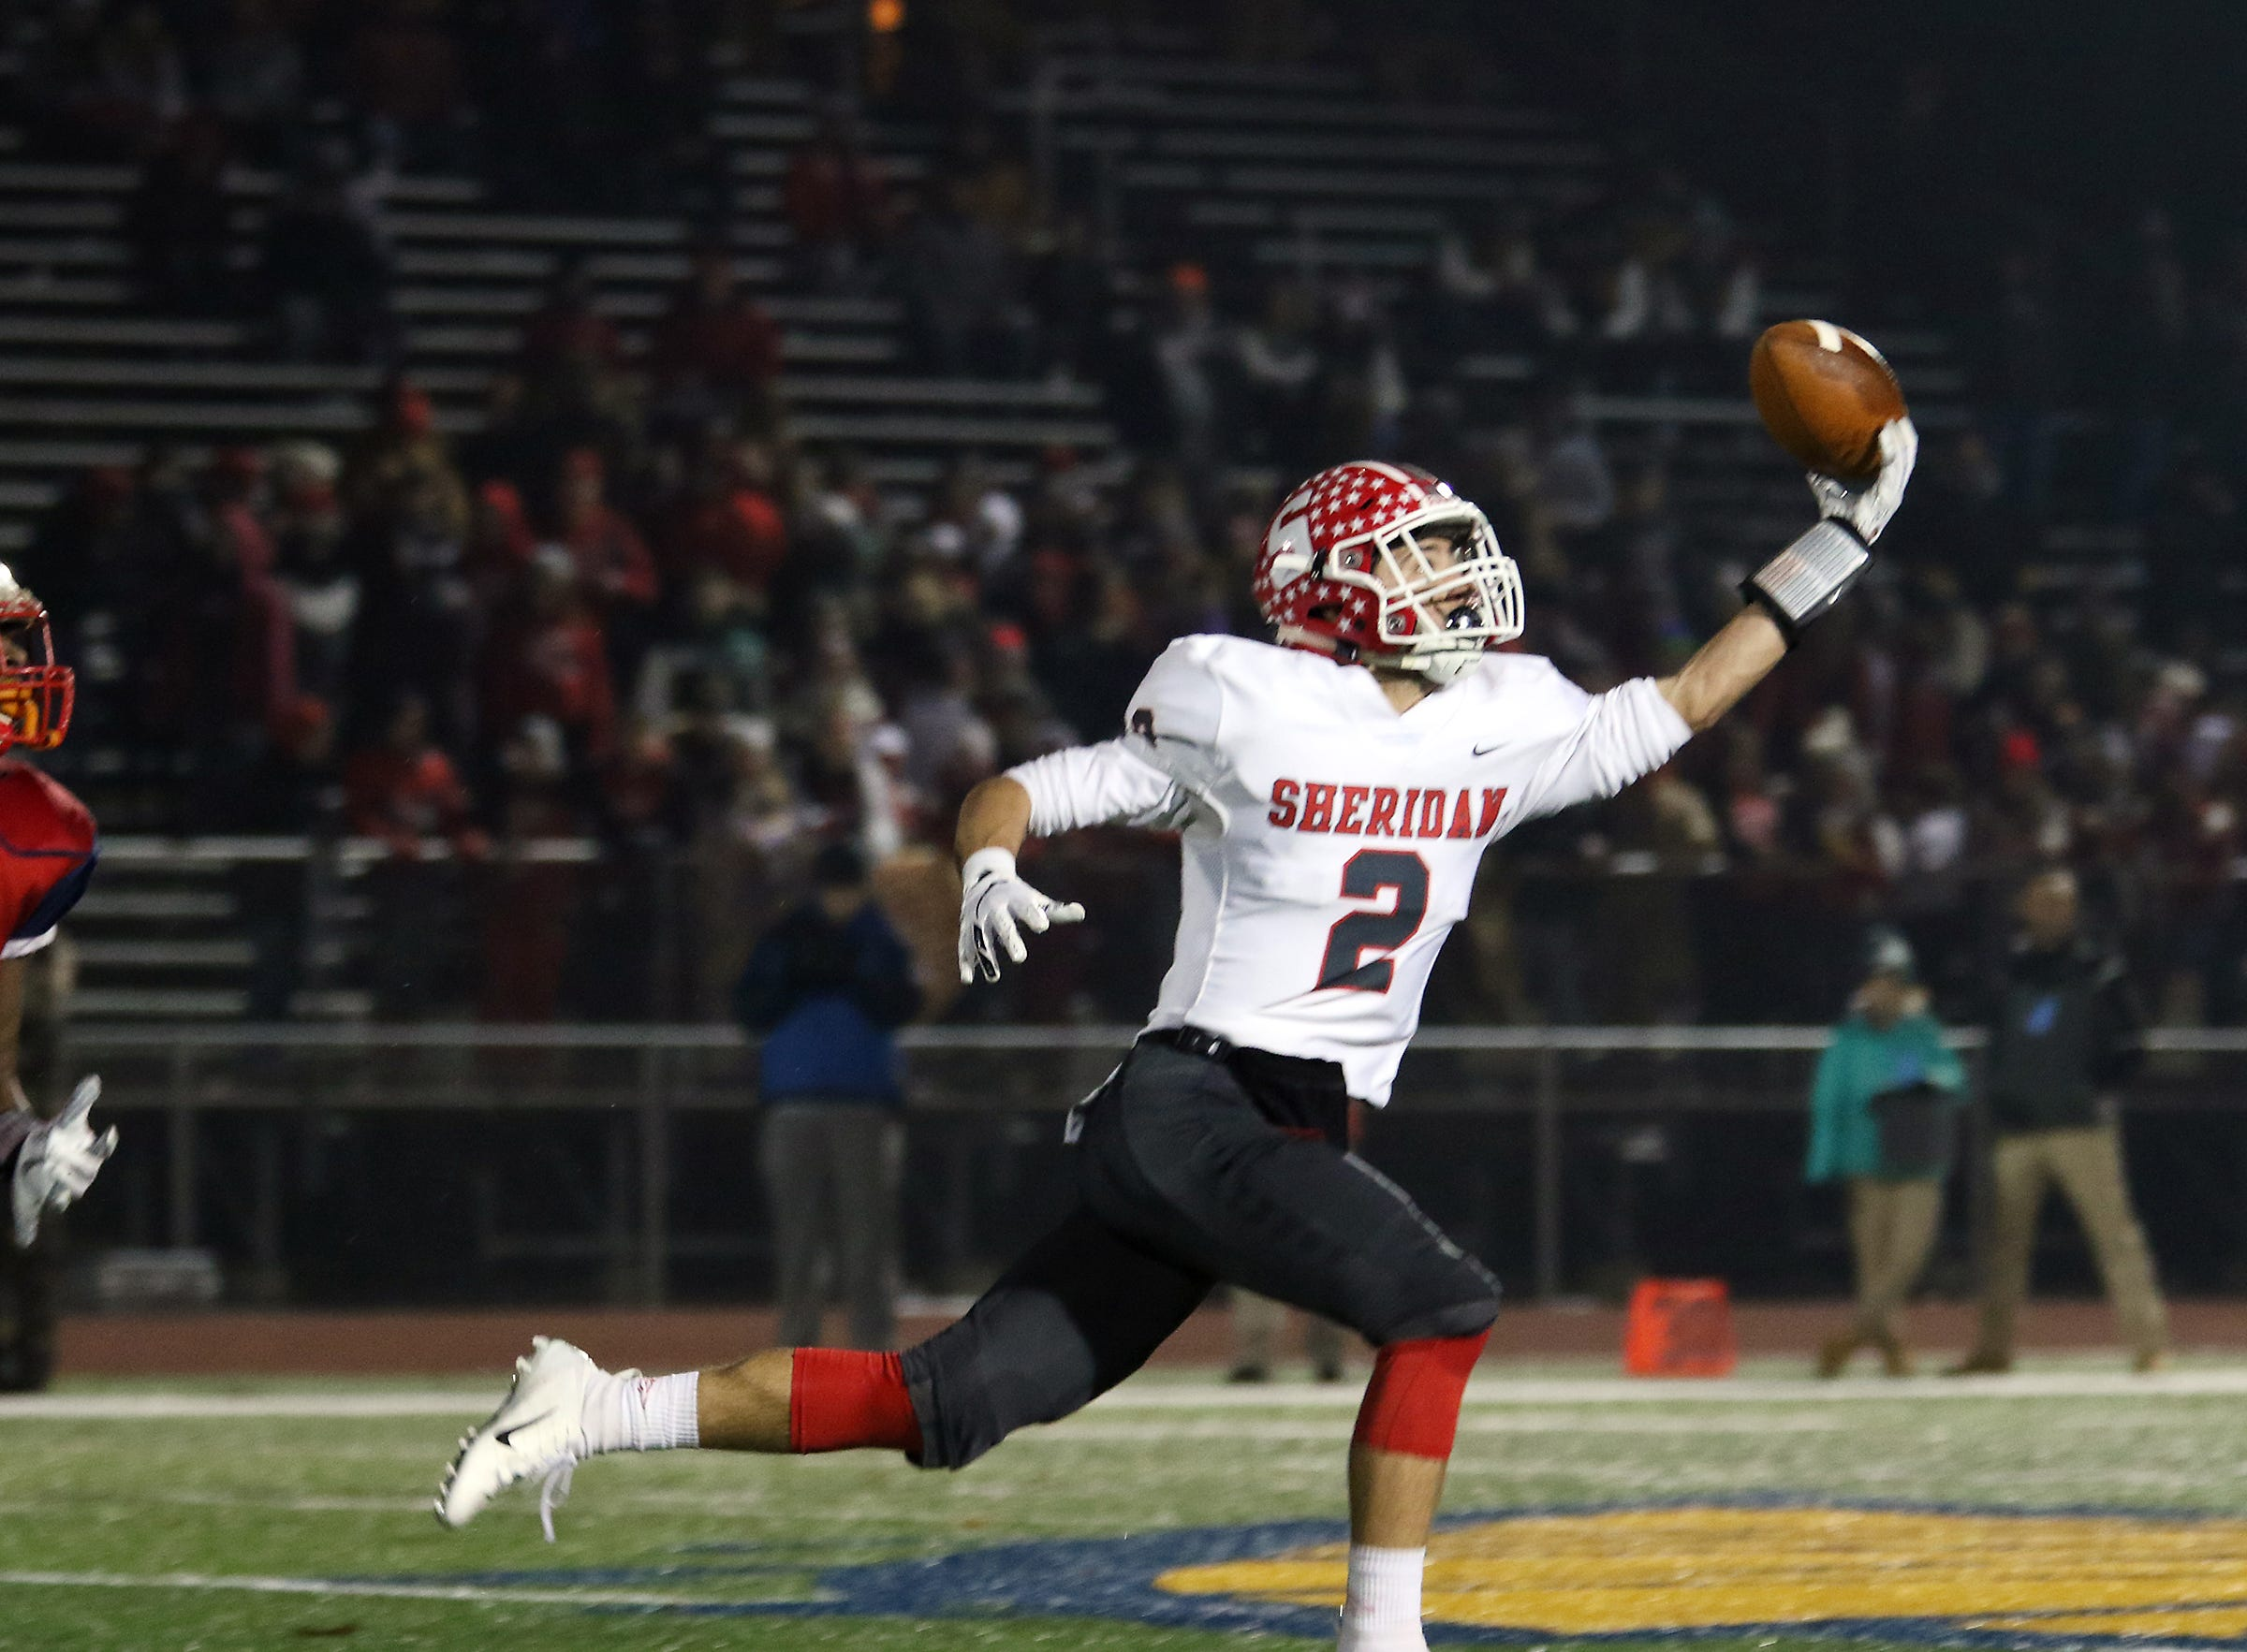 Sheridans' Cole Casto reaches for a pass against Eastmoor.